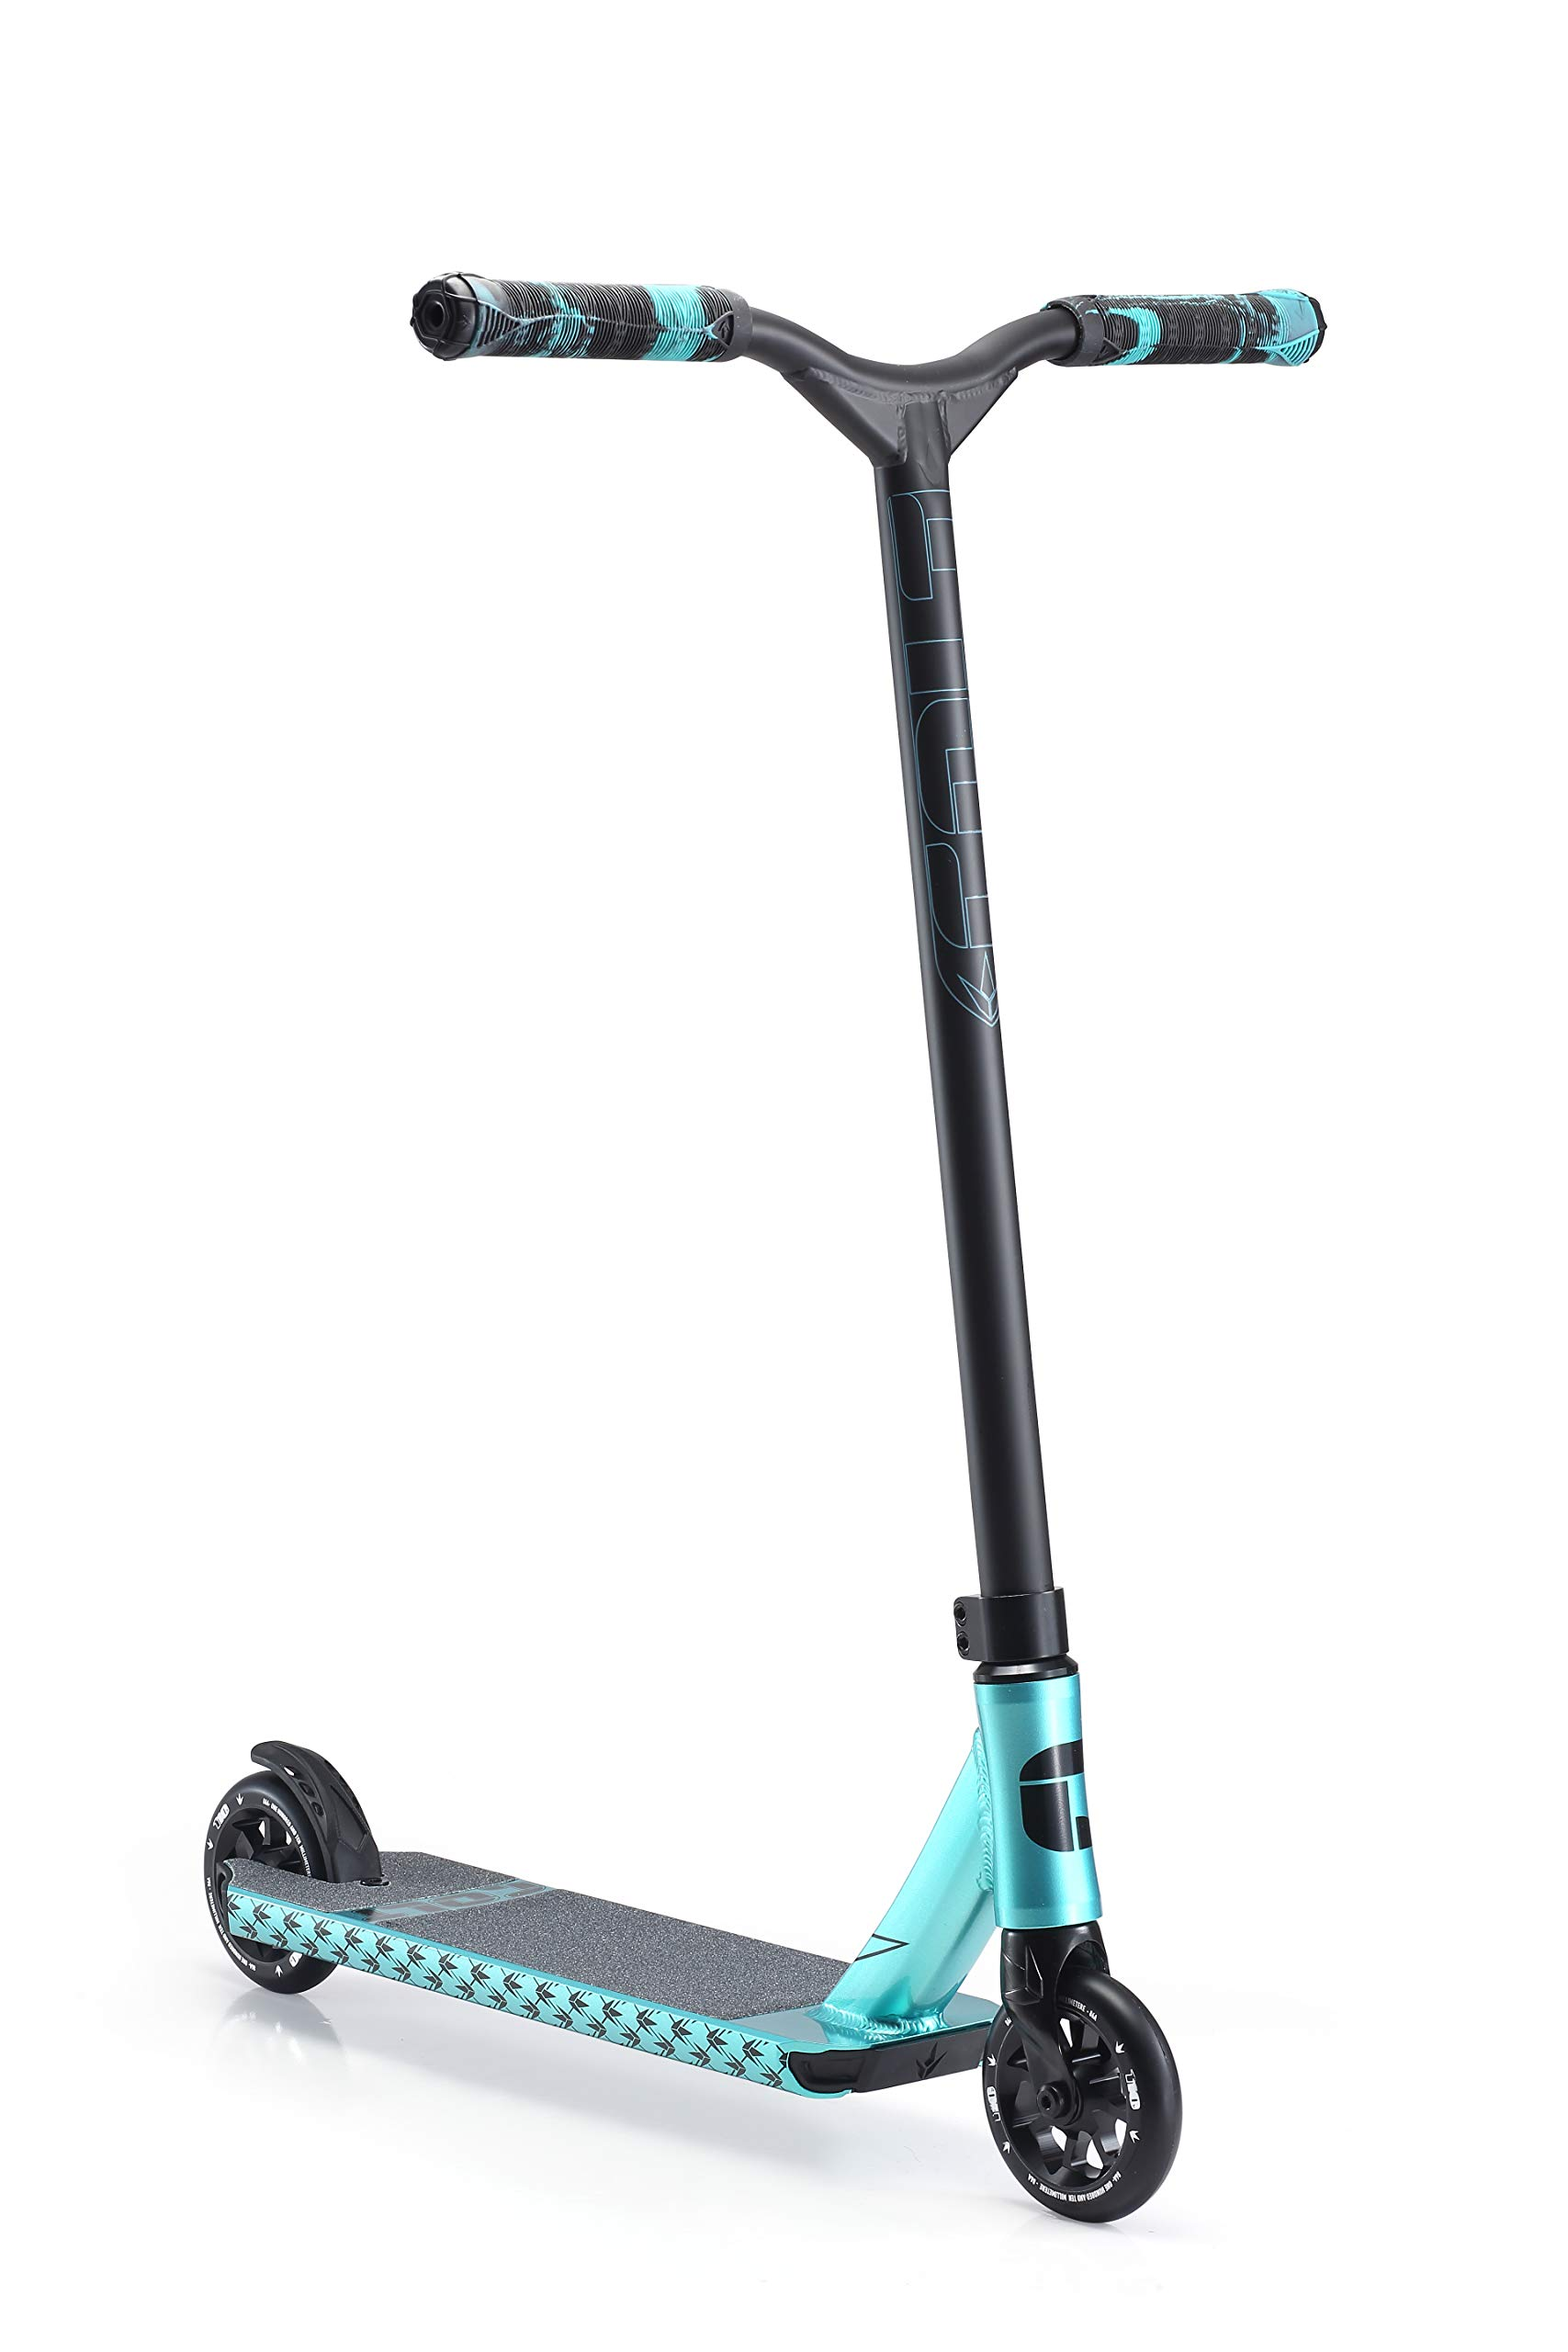 Envy Series 4 Colt Scooter (Teal) by Envyscooters